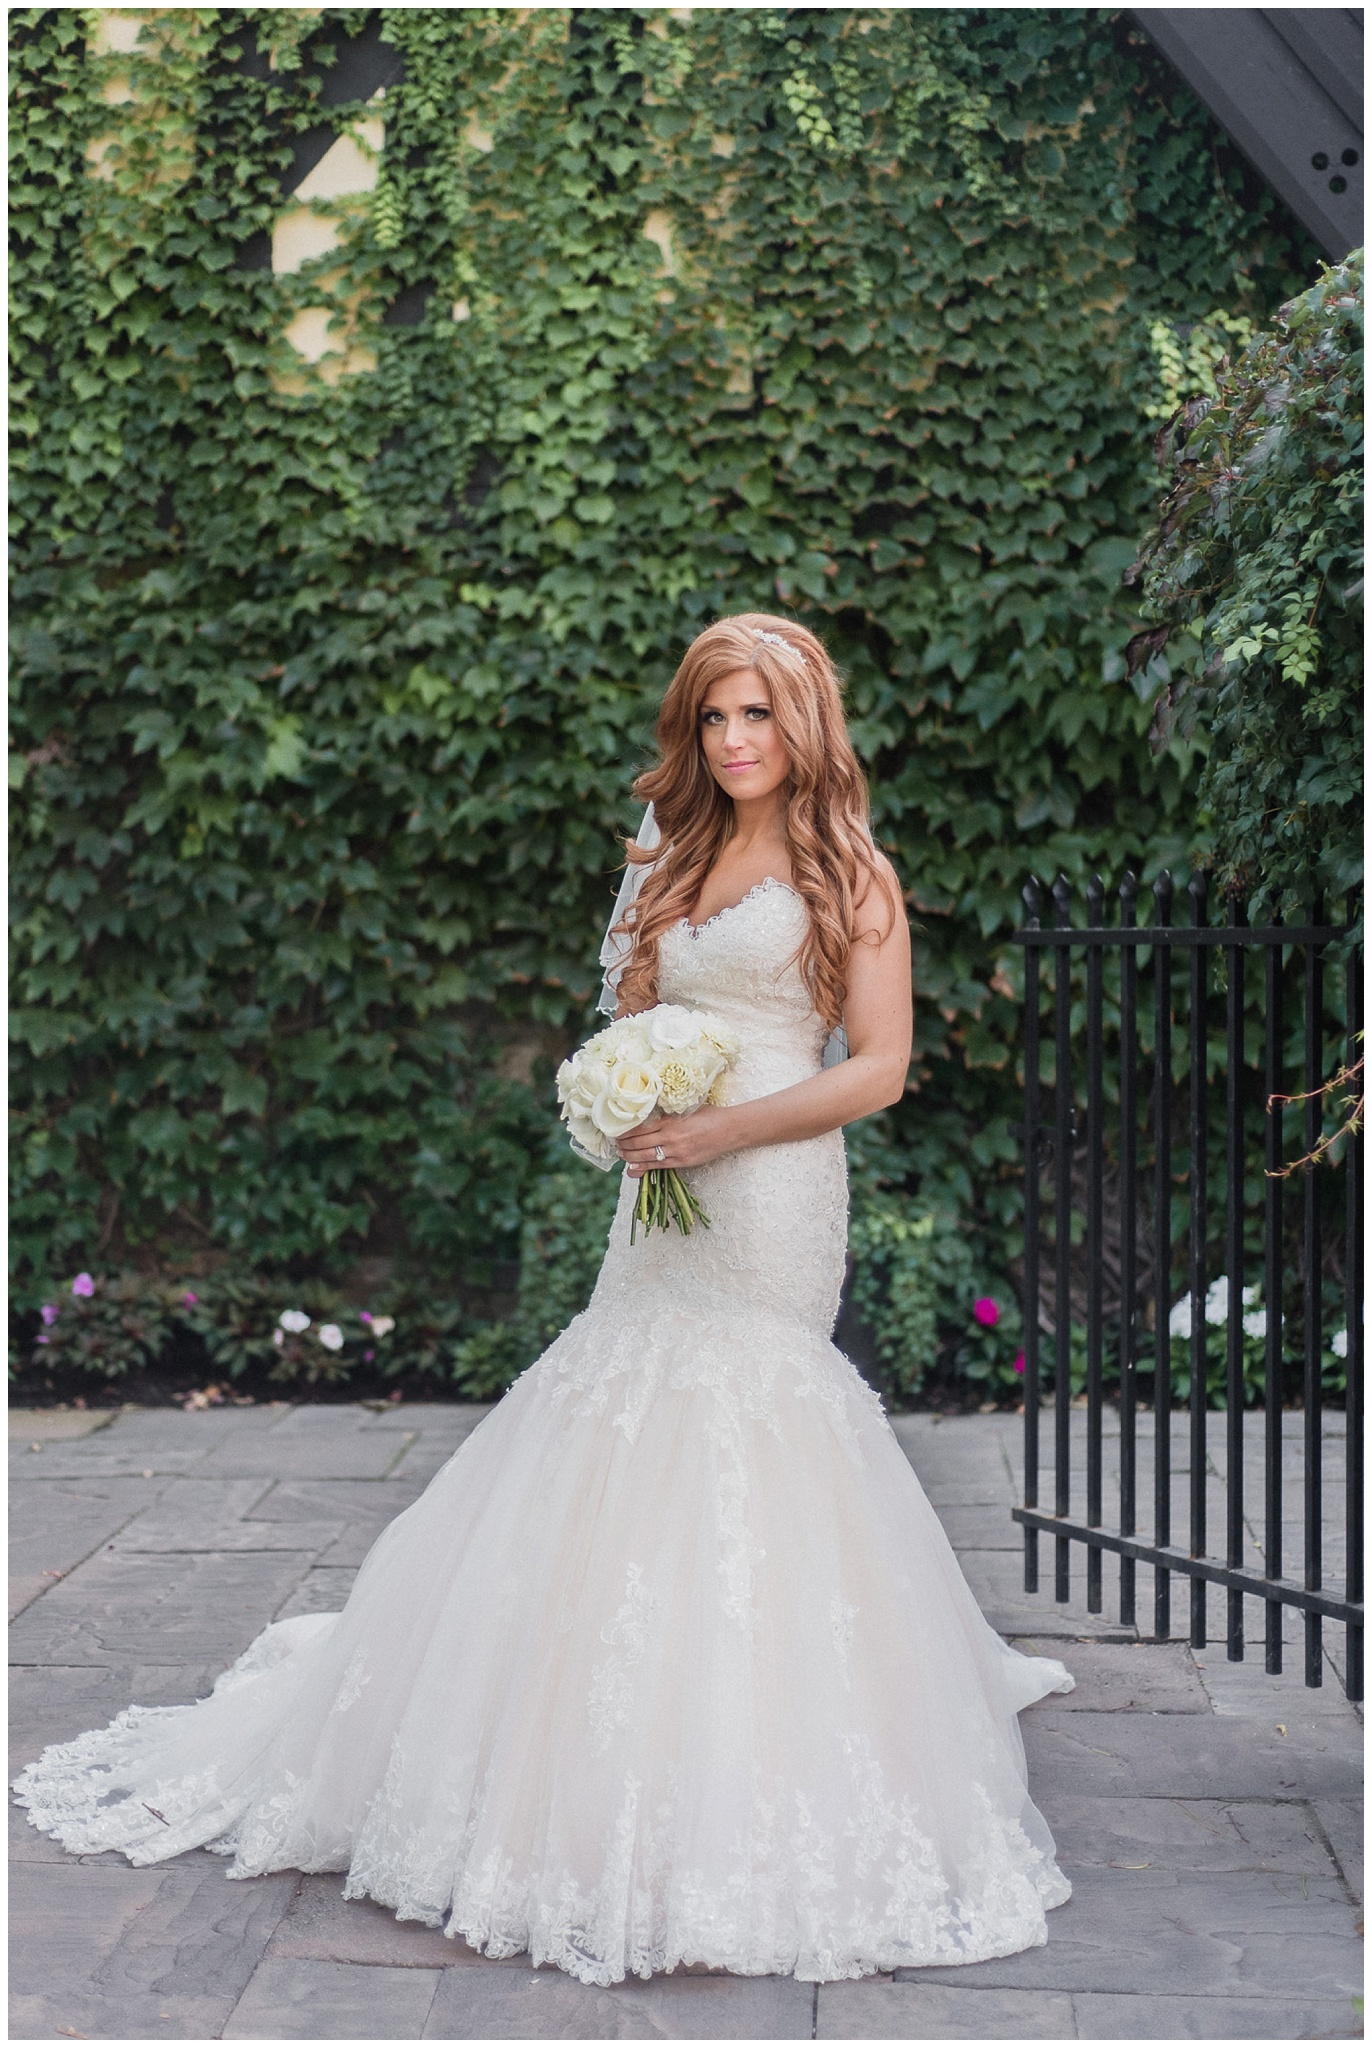 Bride wearing a Maggie Sottero gown photographed by Jenn Kavanagh Photography